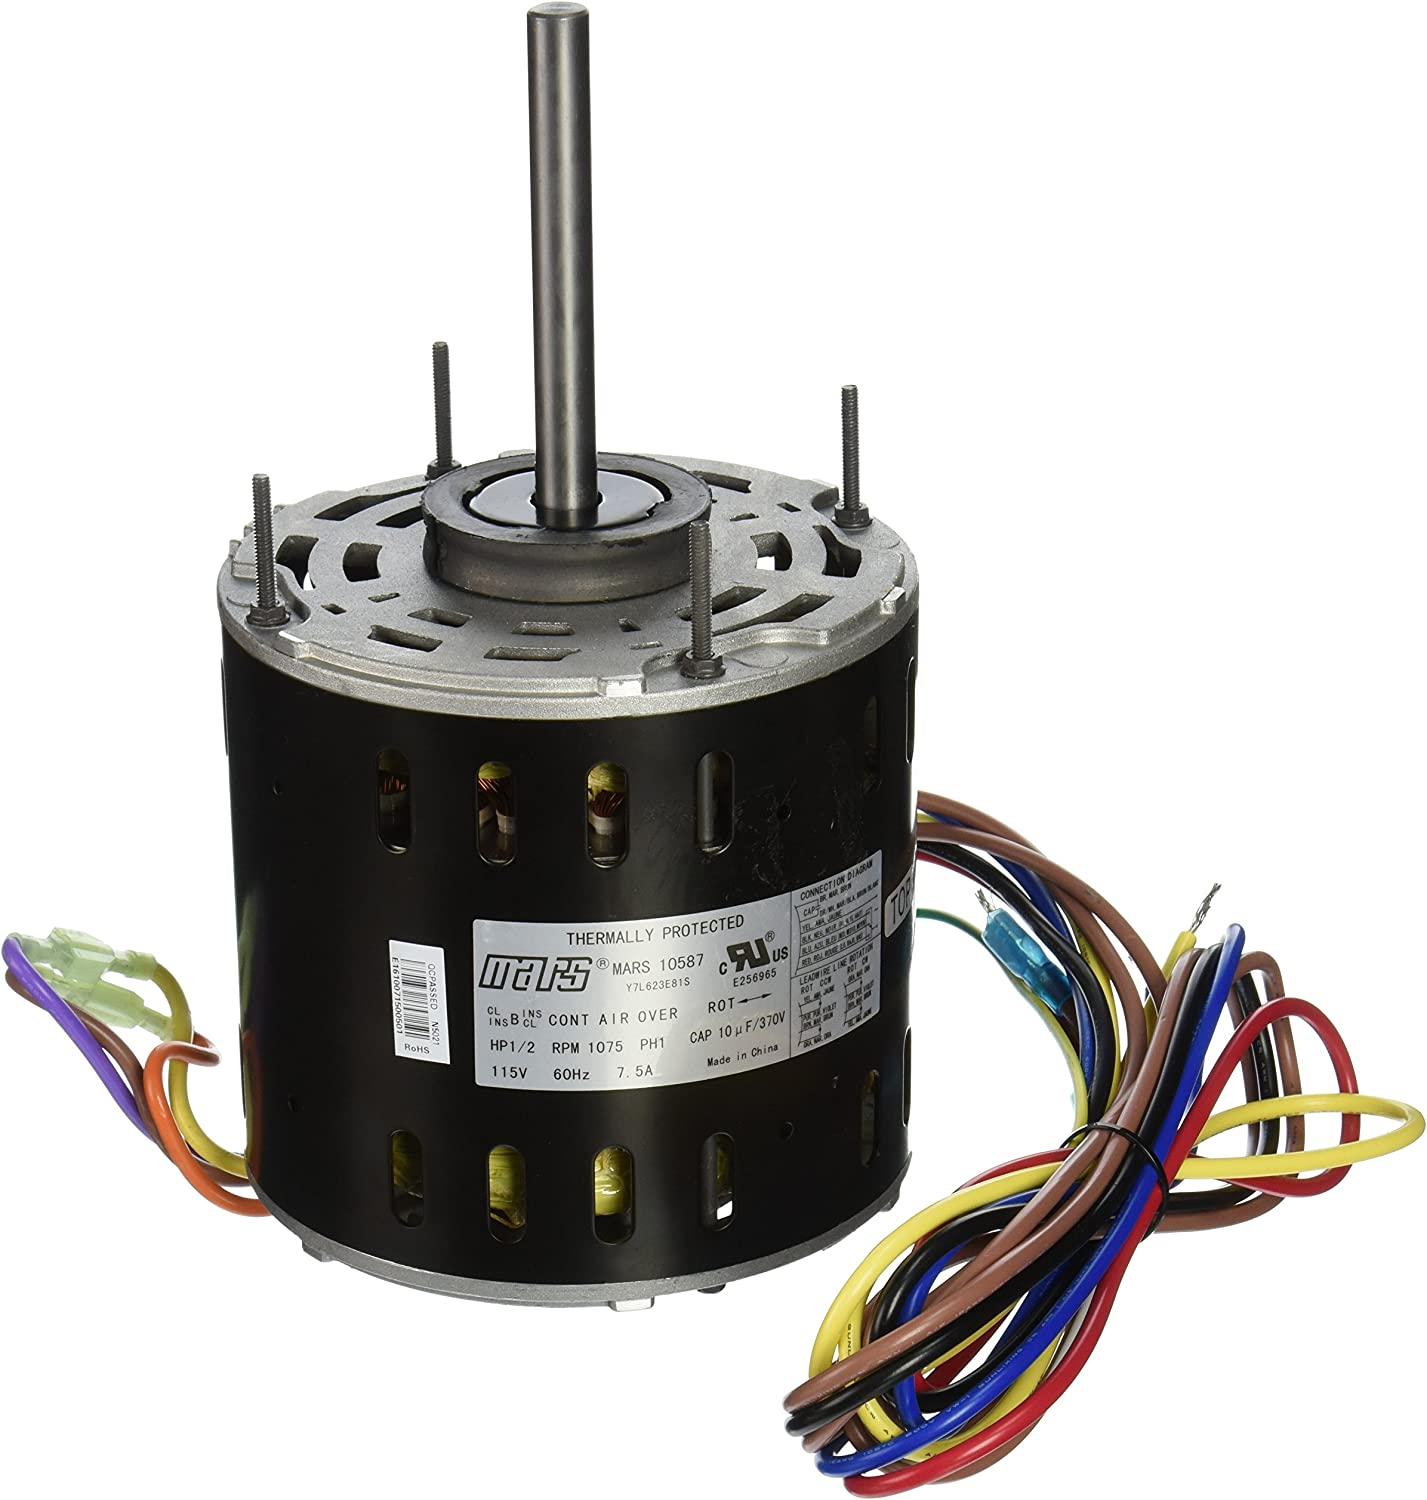 MARS - Motors & Armatures 10587 1/2 hp 115v Direct Drive - Electronic  Component Motors - Amazon.comAmazon.com